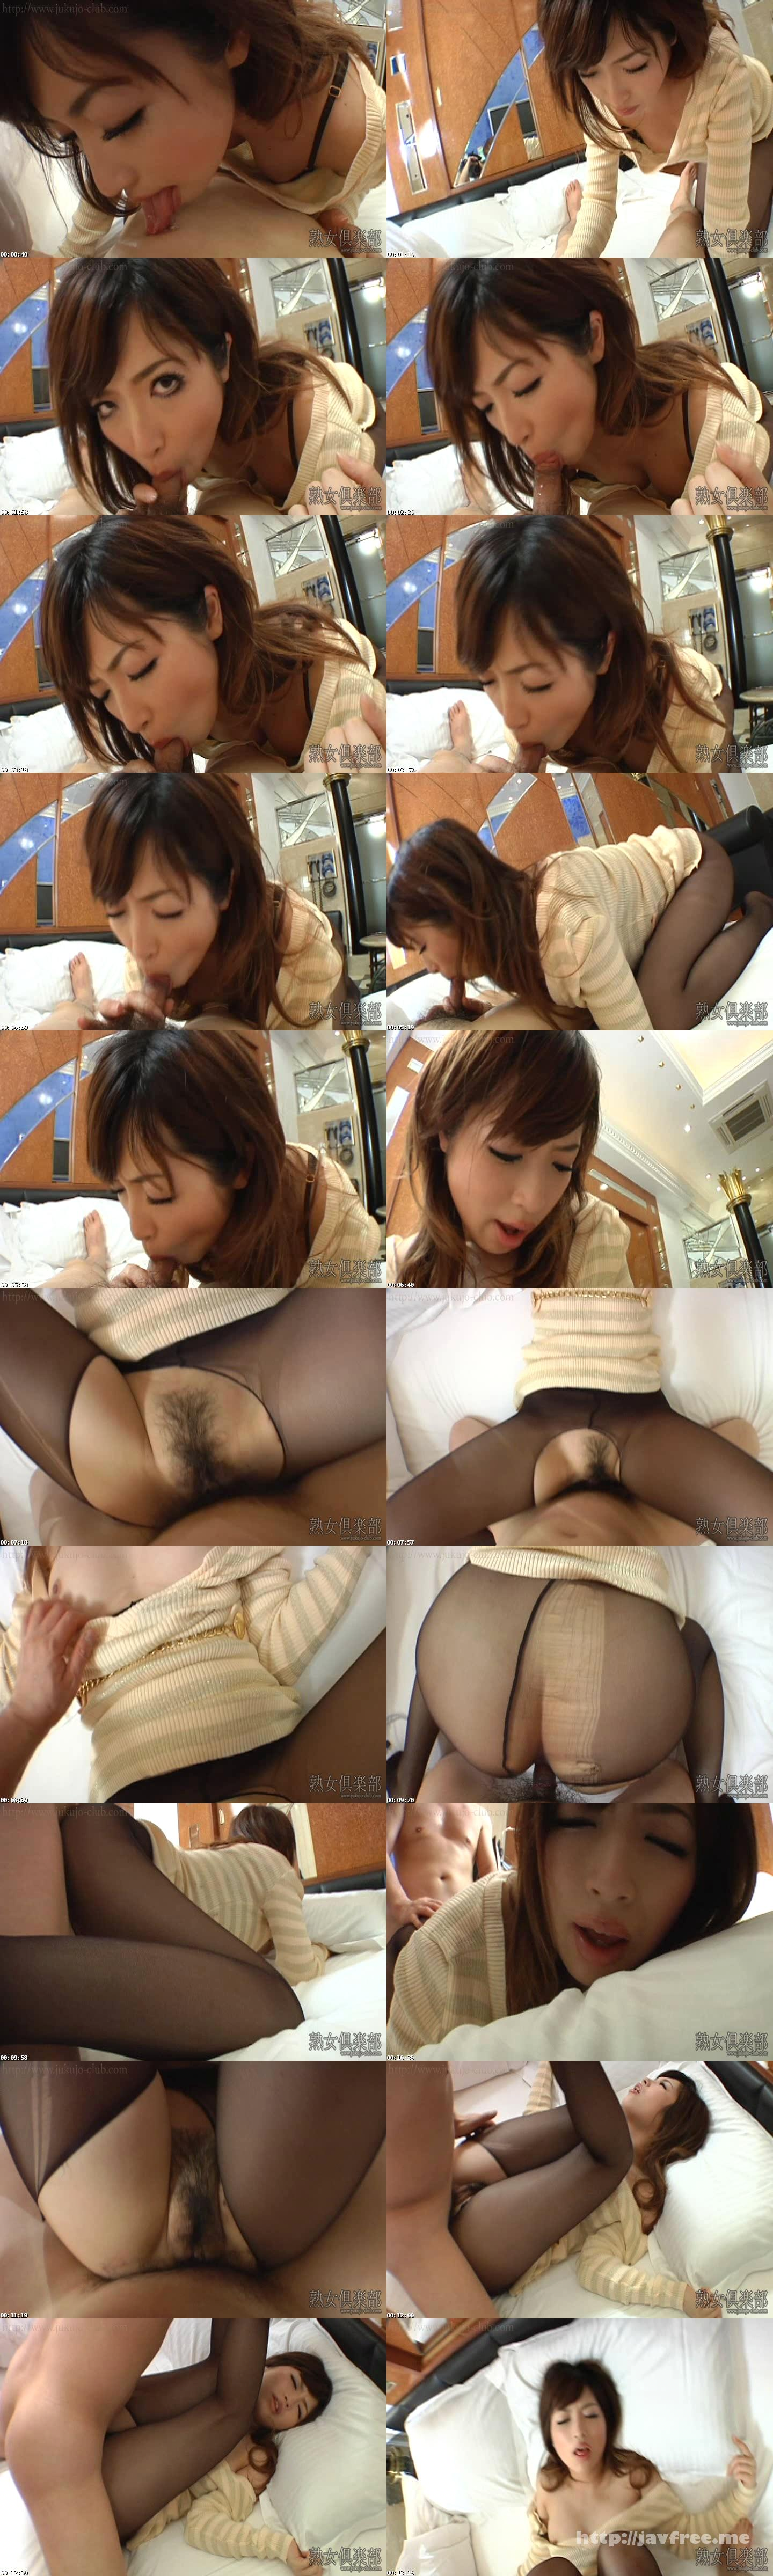 XXX-AV 22045 1日限定お宝動画プレゼント!vol.03 - image xxxav-22045 on https://javfree.me